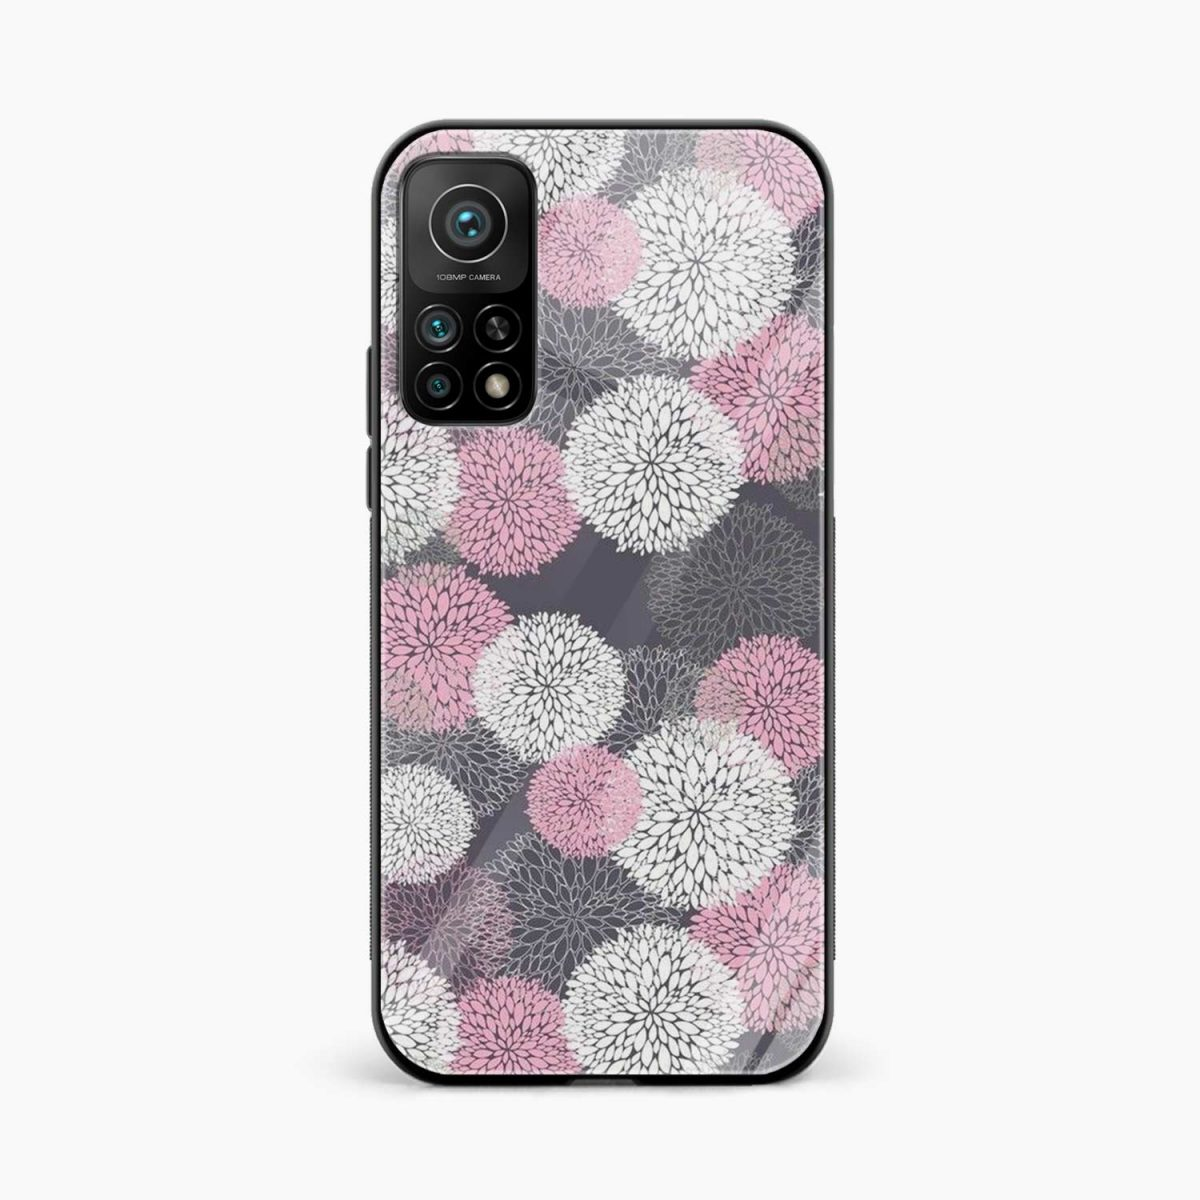 pink white flower pattern xiaomi mi 10t pro back cover front view